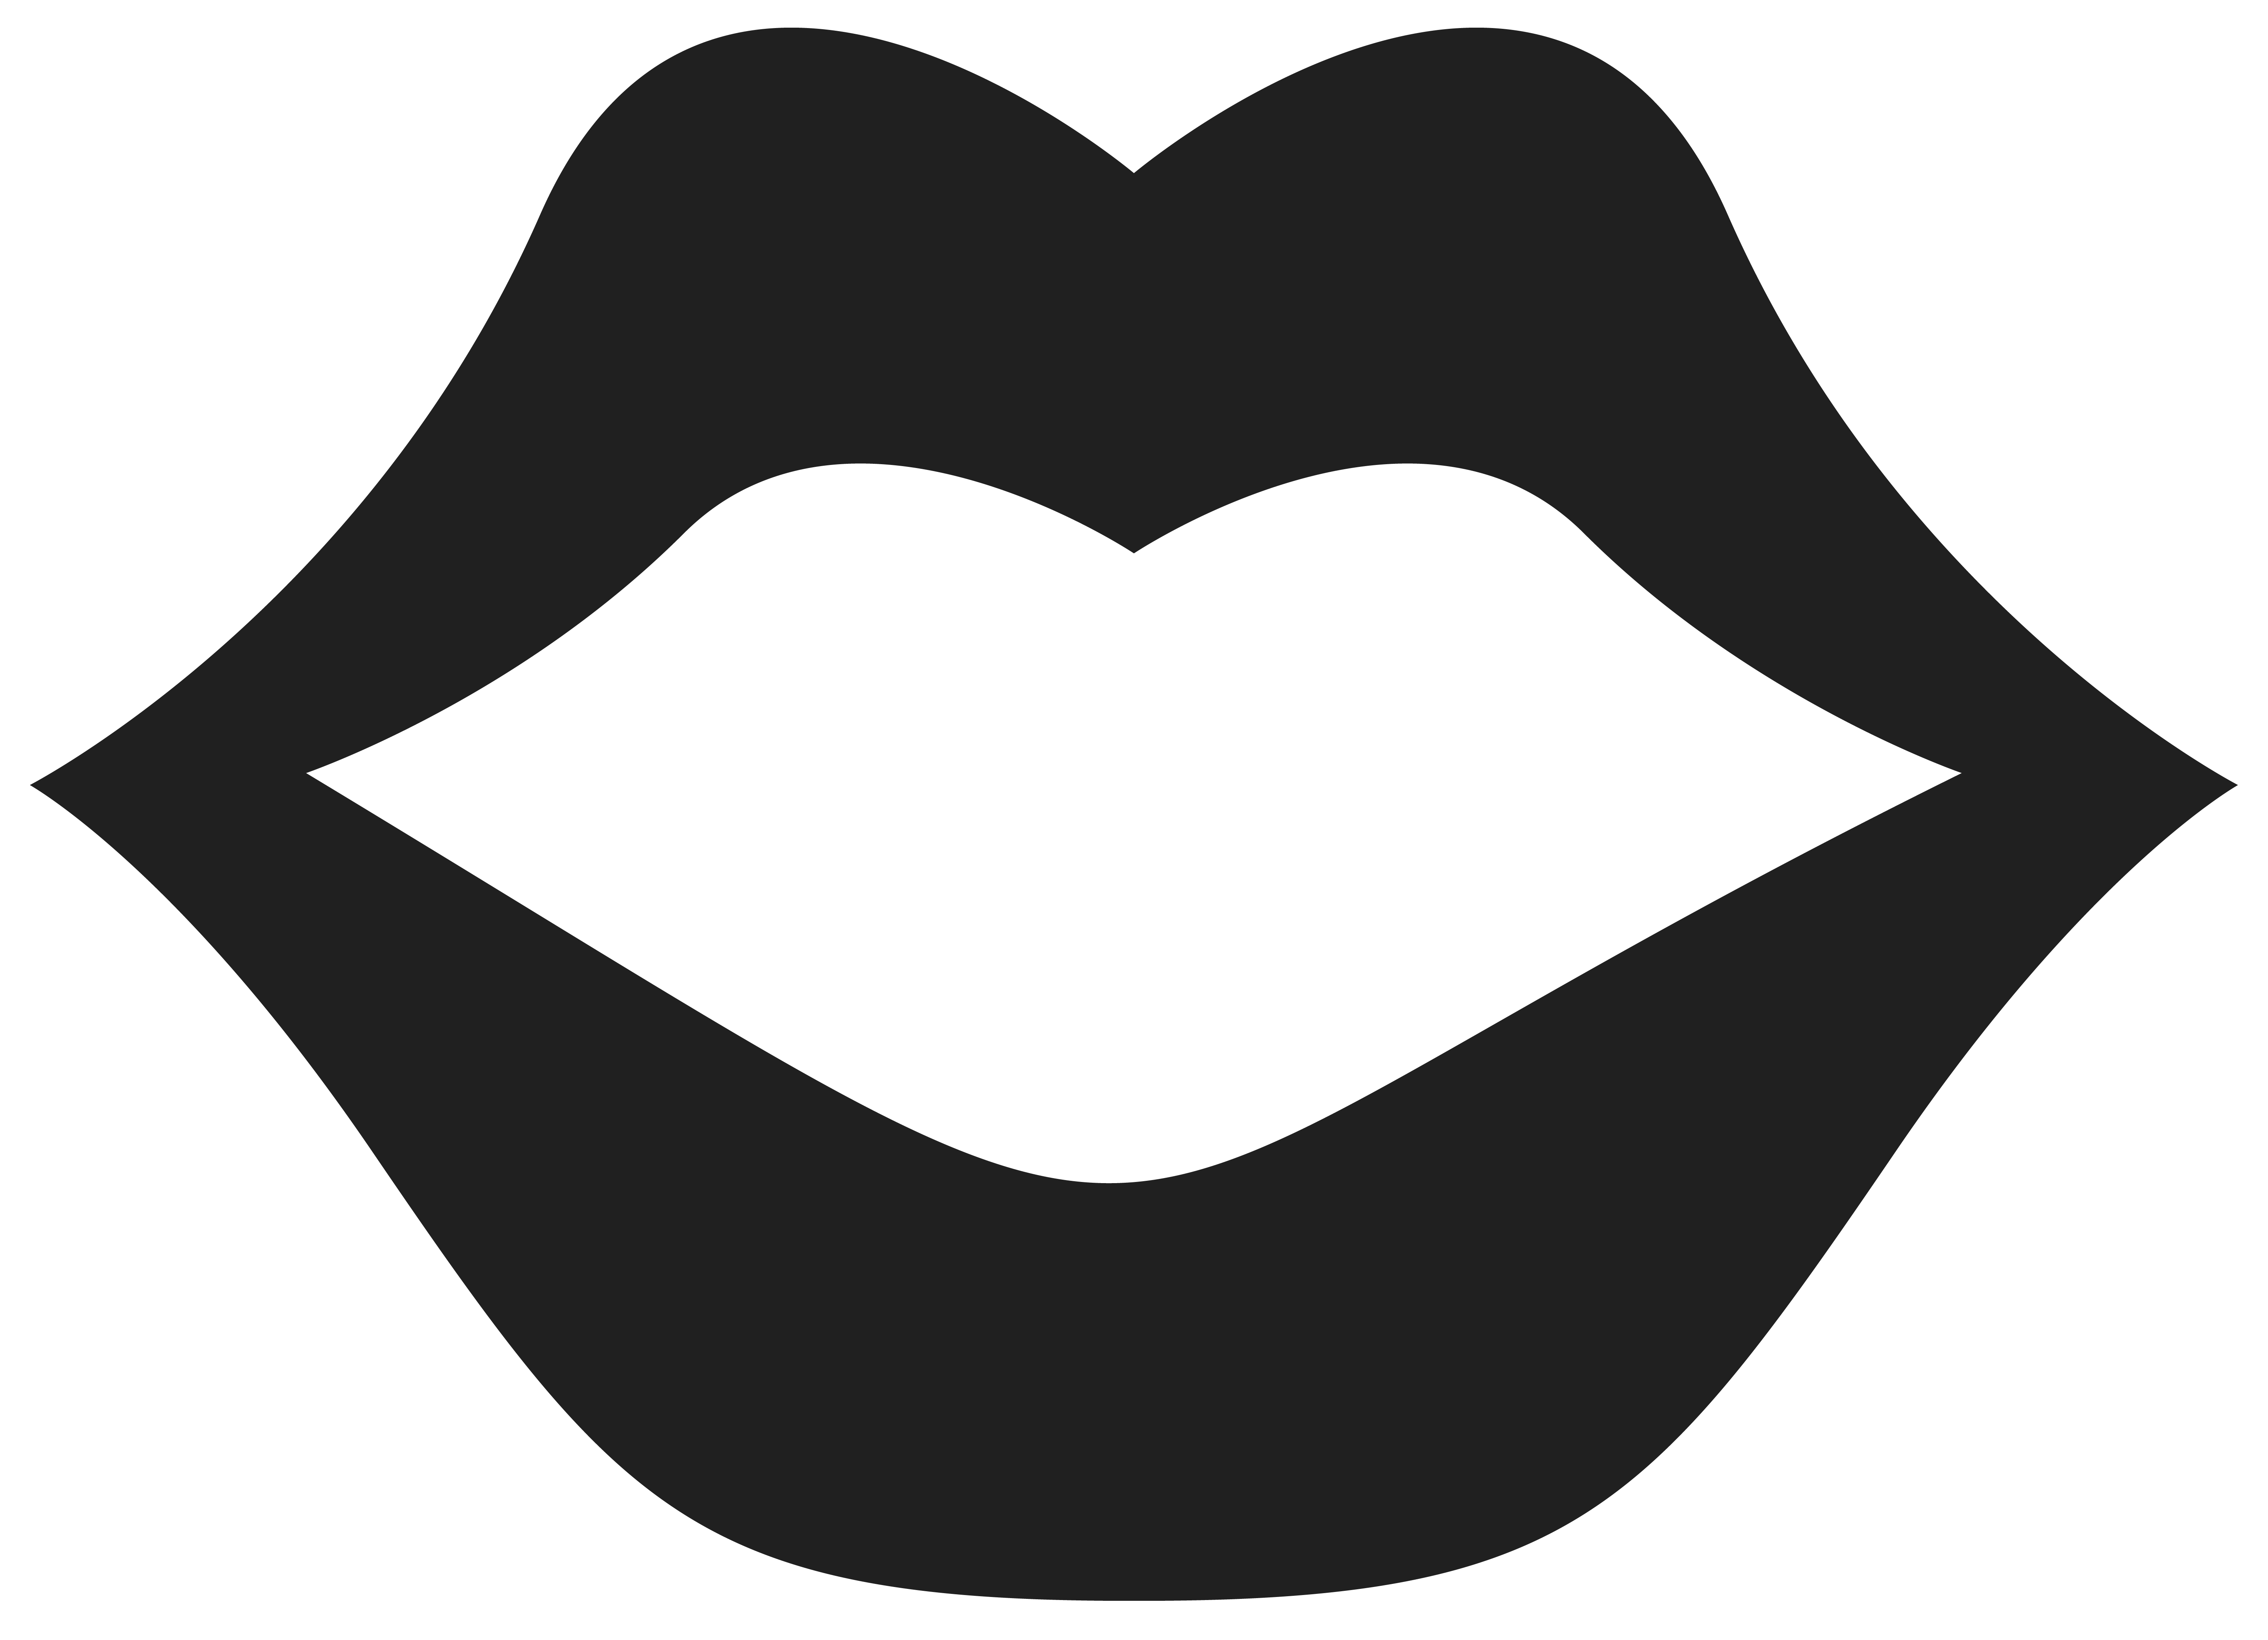 Black and white lips png. Movember mouth clipart picture